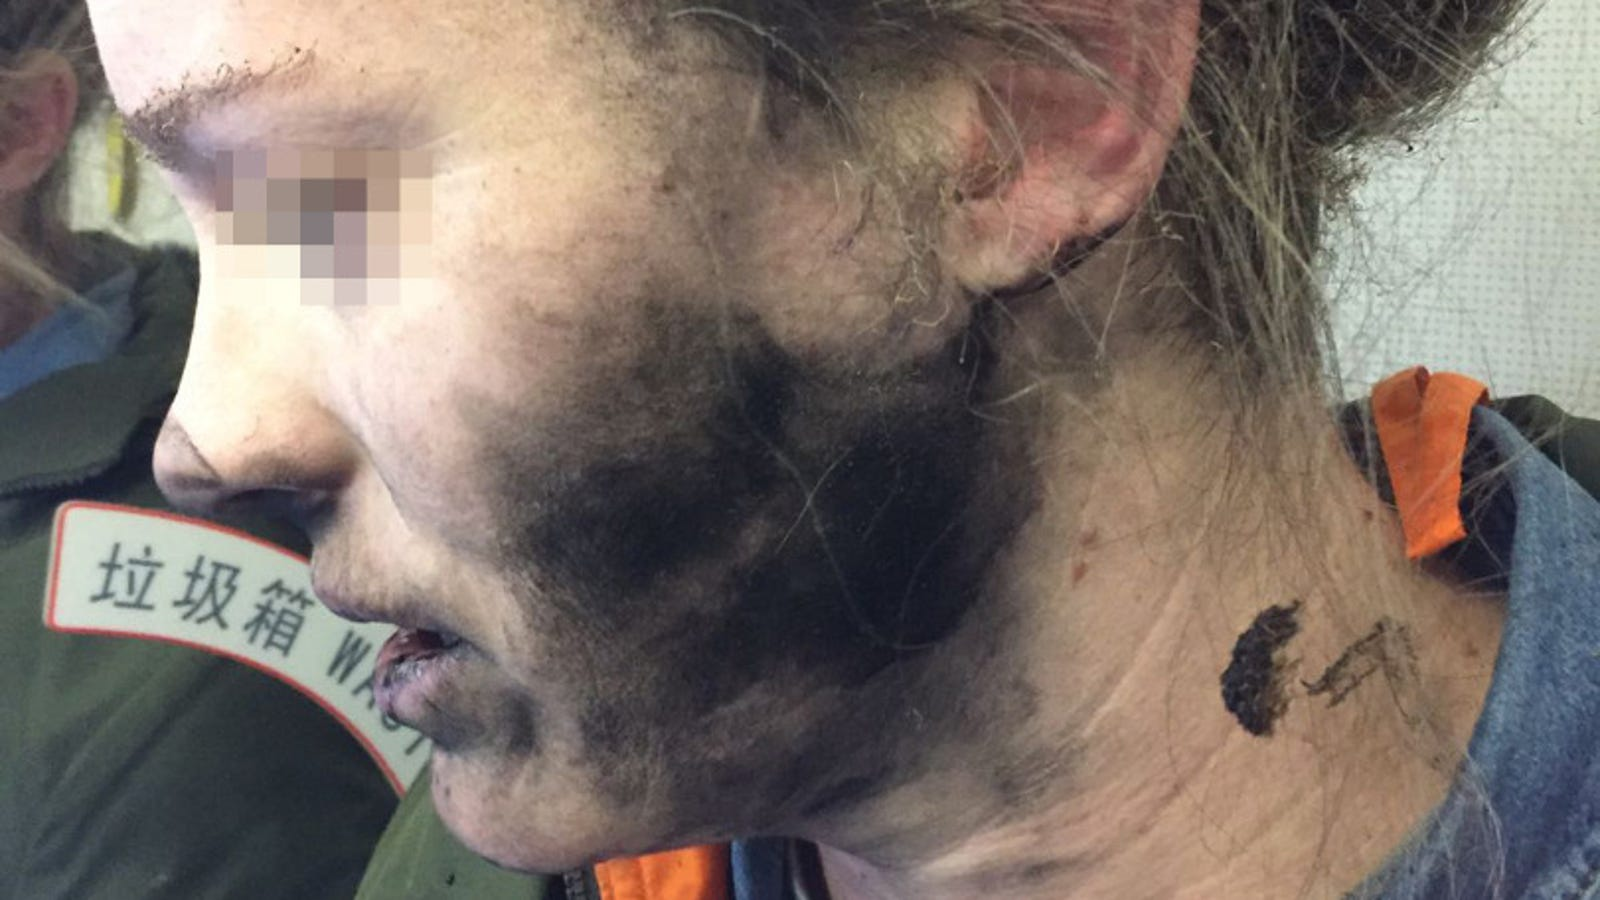 wireless headphones bluetooth collar - This Is What Happens When Your Headphones Explode on an Airplane [GRAPHIC]